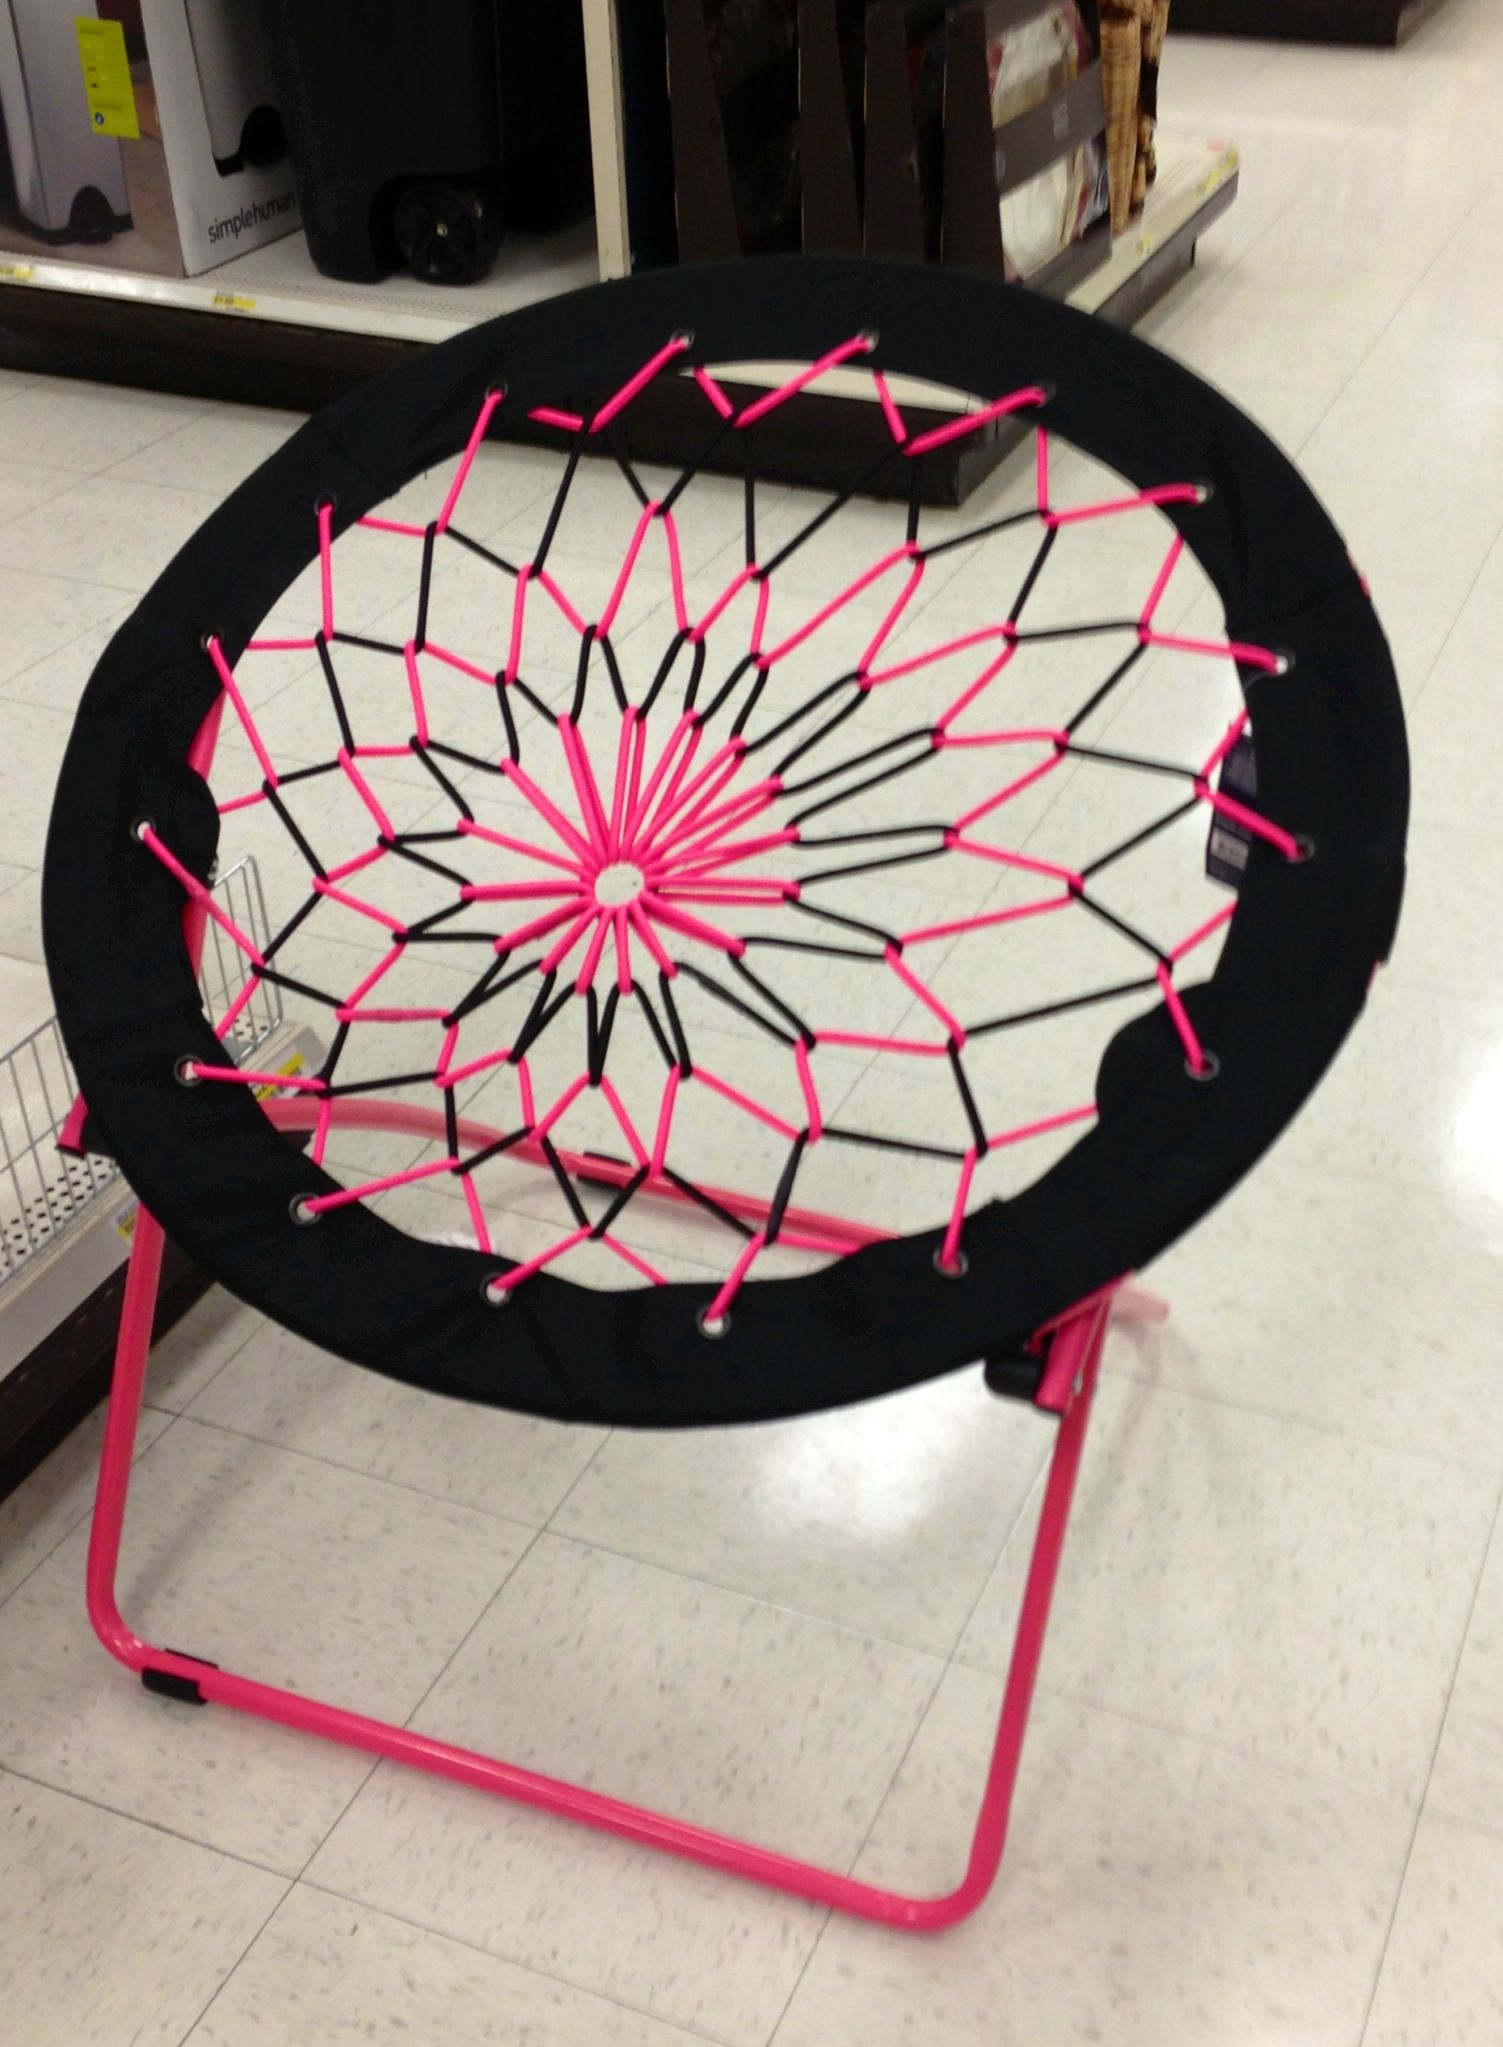 Bungi Chair Bungee Chair So Fun I Want One From Target My Dream